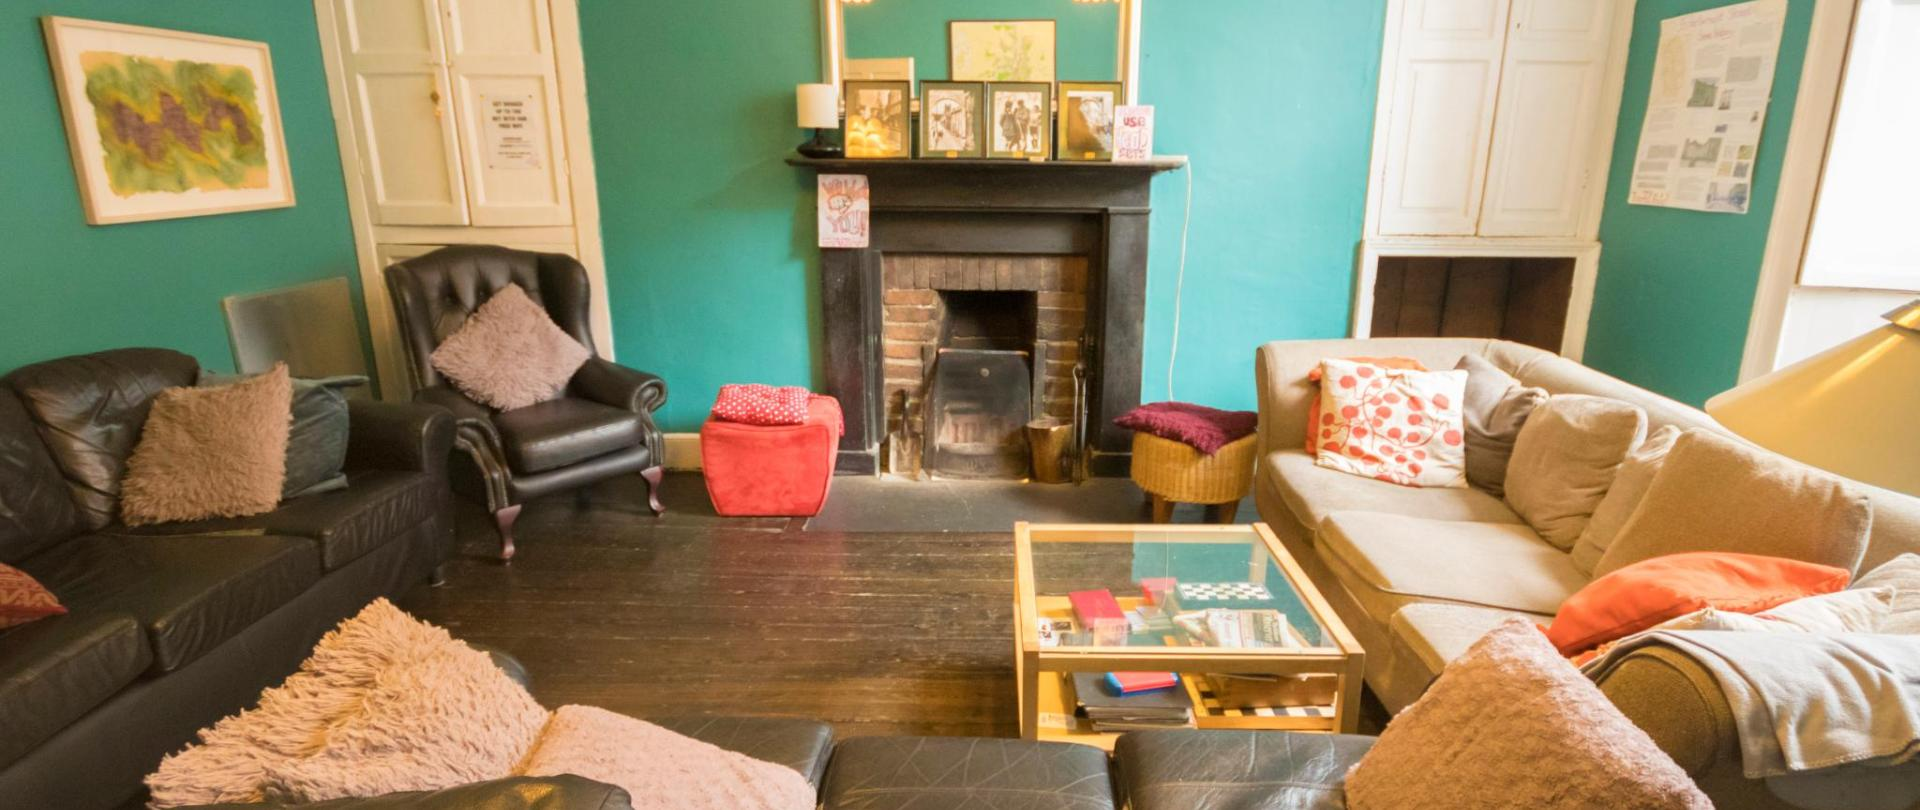 Relax in our Cosy Sitting Room at Kilkenny Tourist Hostel